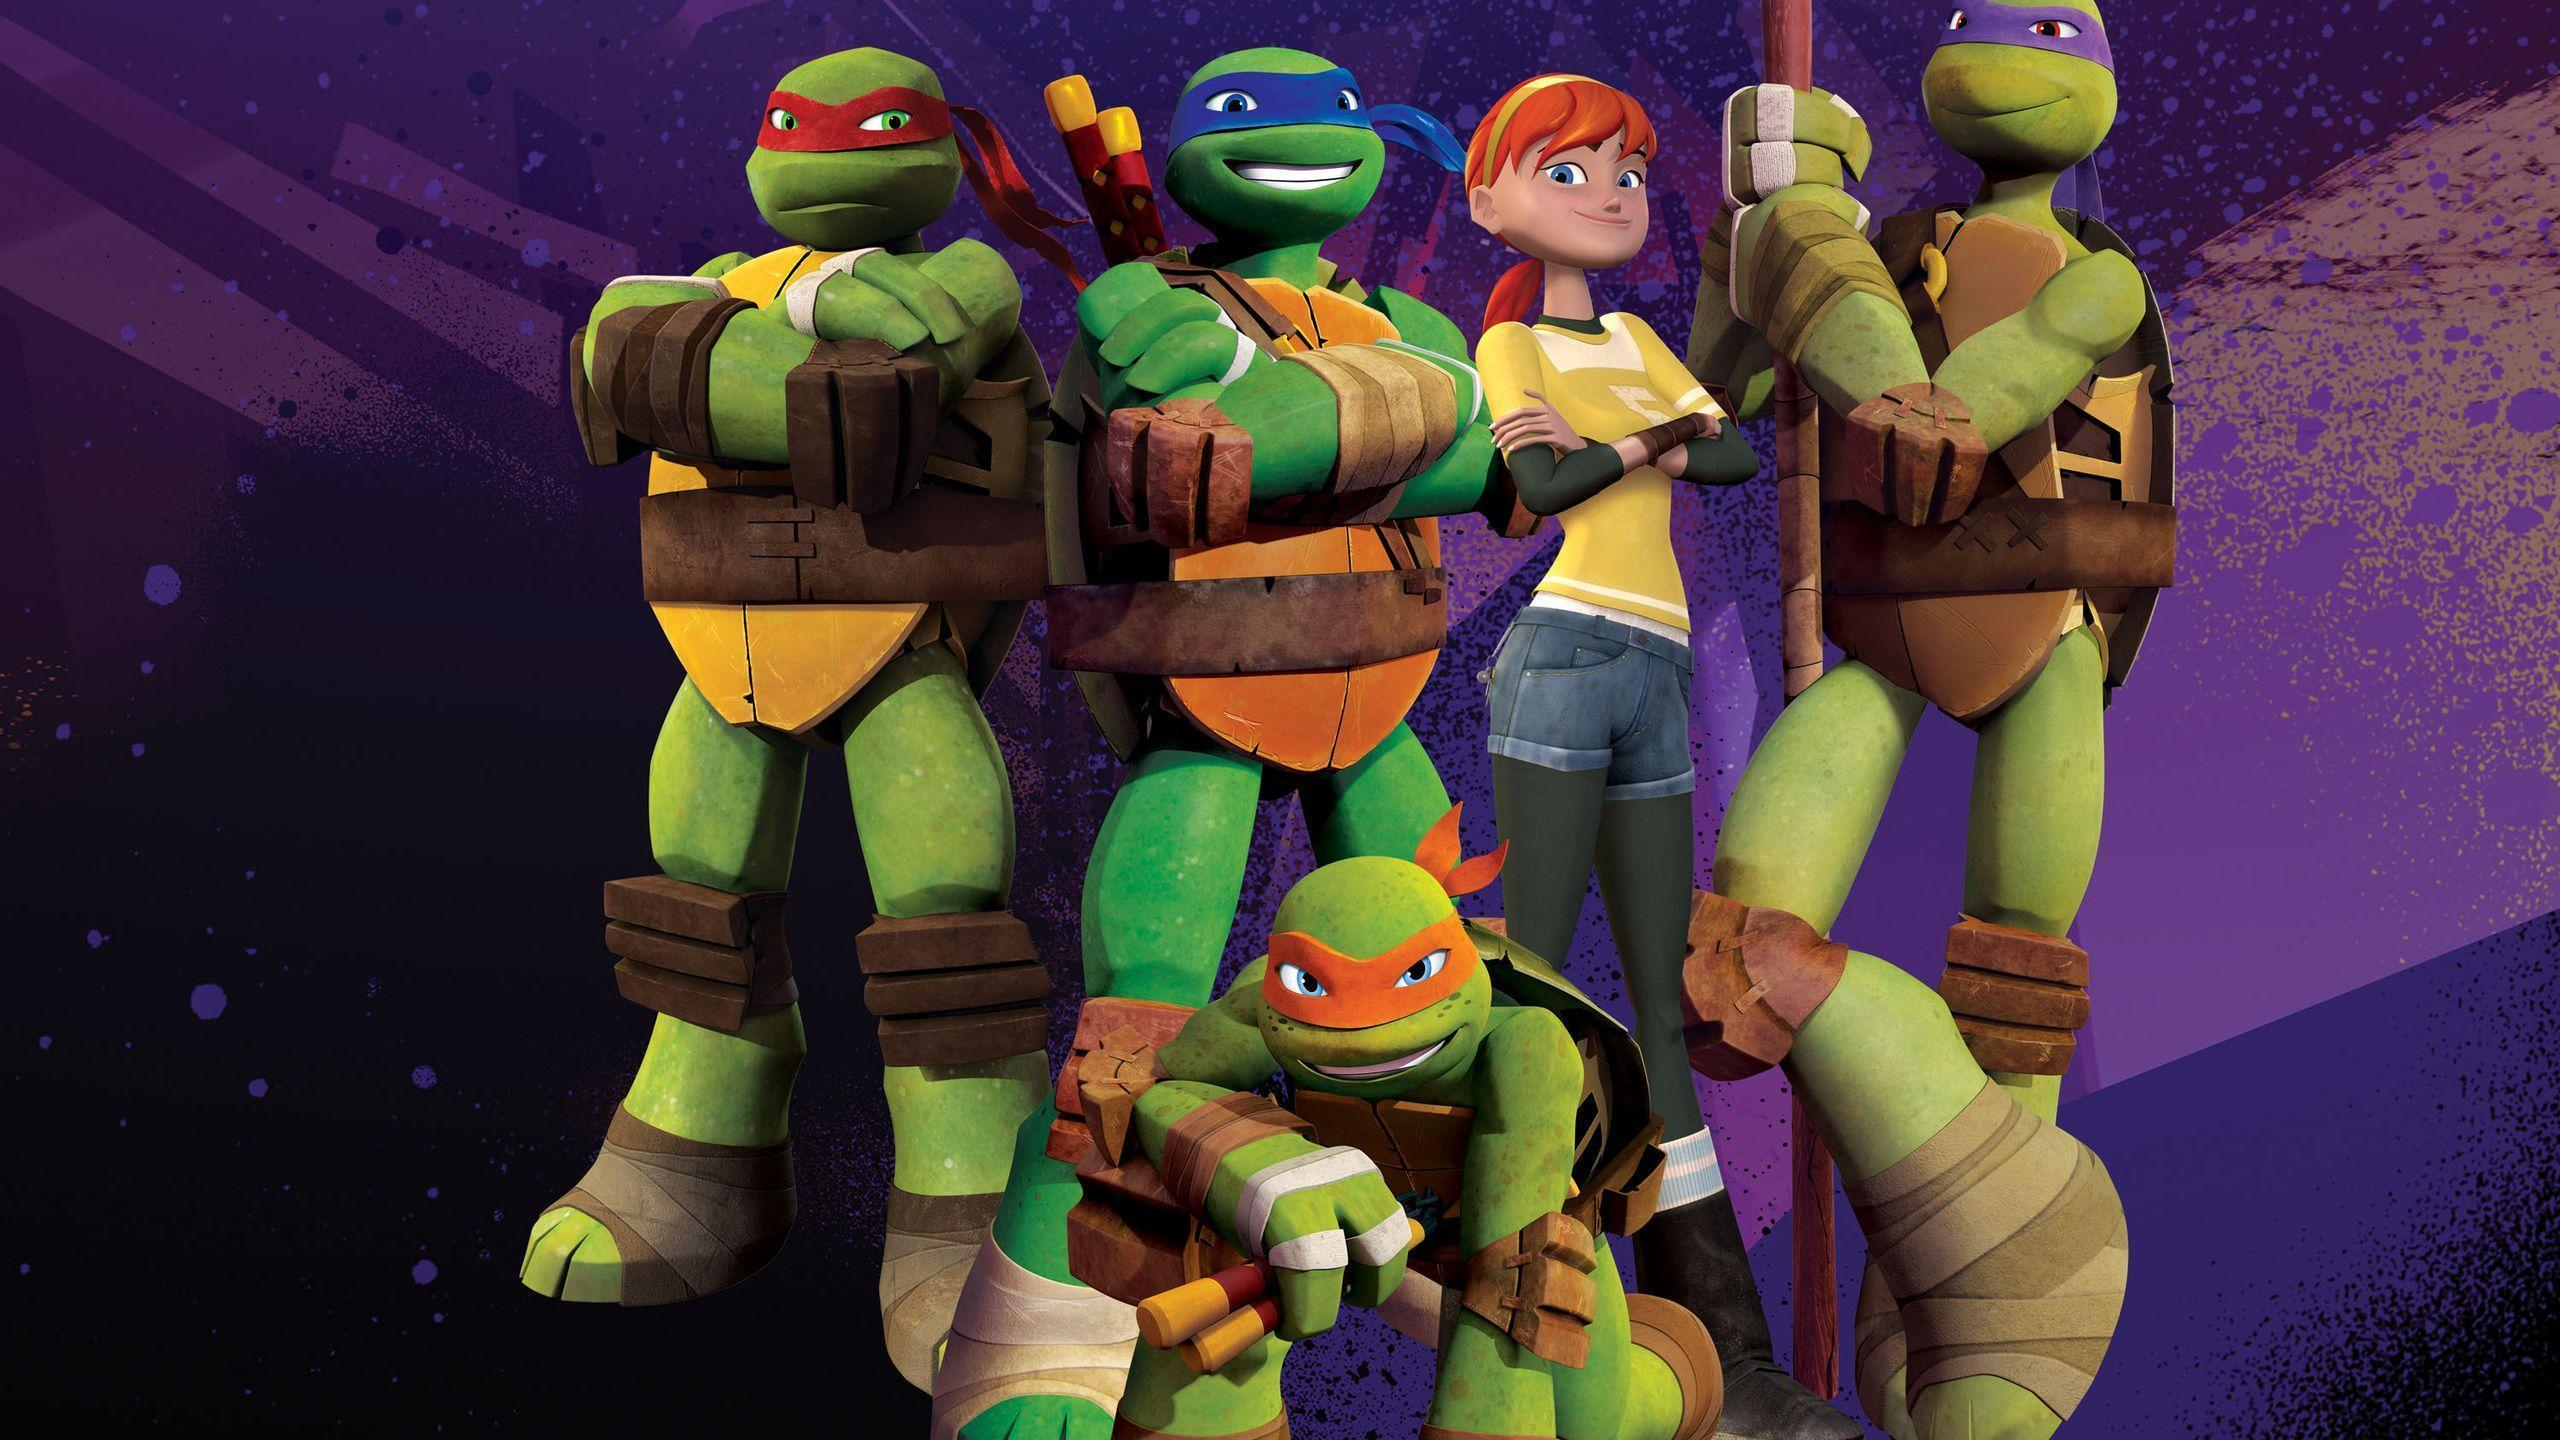 2560x1440 tmnt, leonardo, teenage mutant ninja turtles, donatello